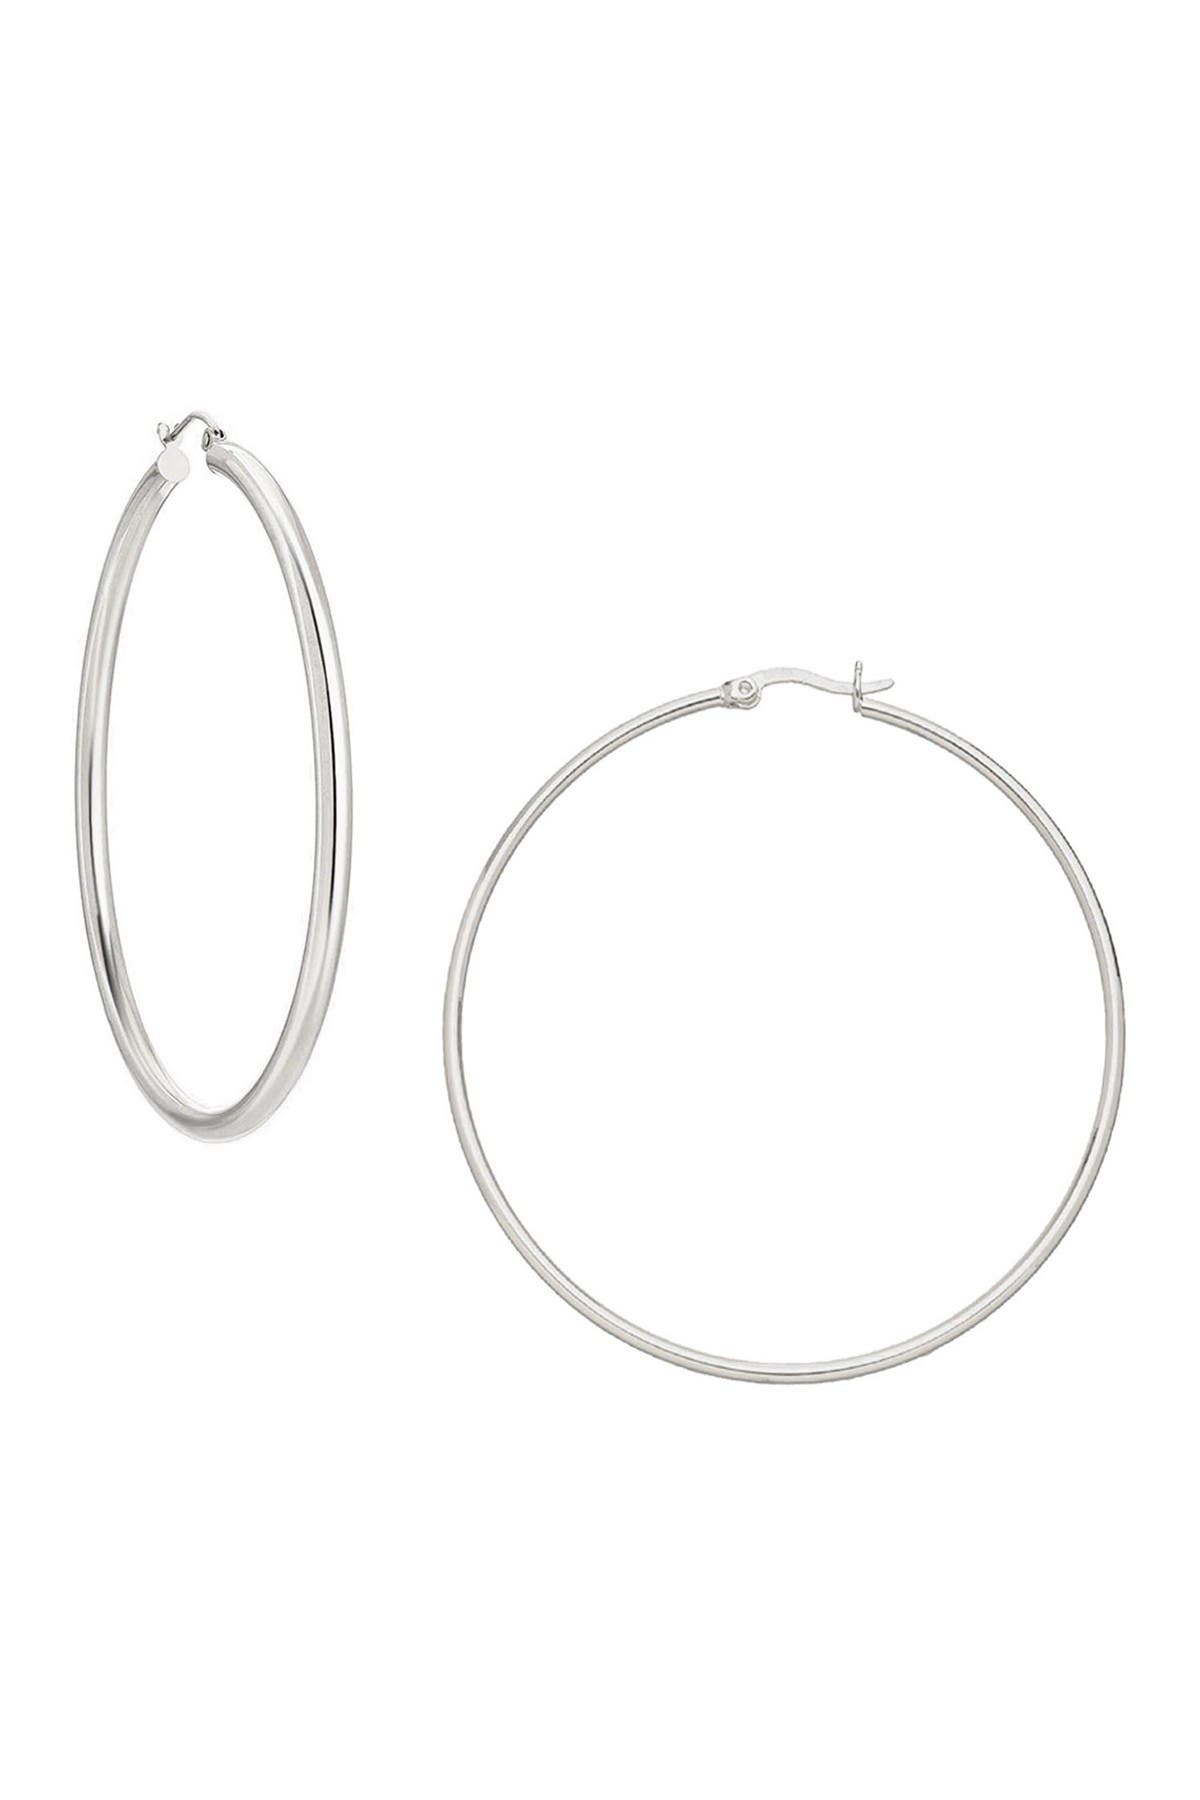 Image of Savvy Cie Sterling Silver 58mm Hoop Earrings